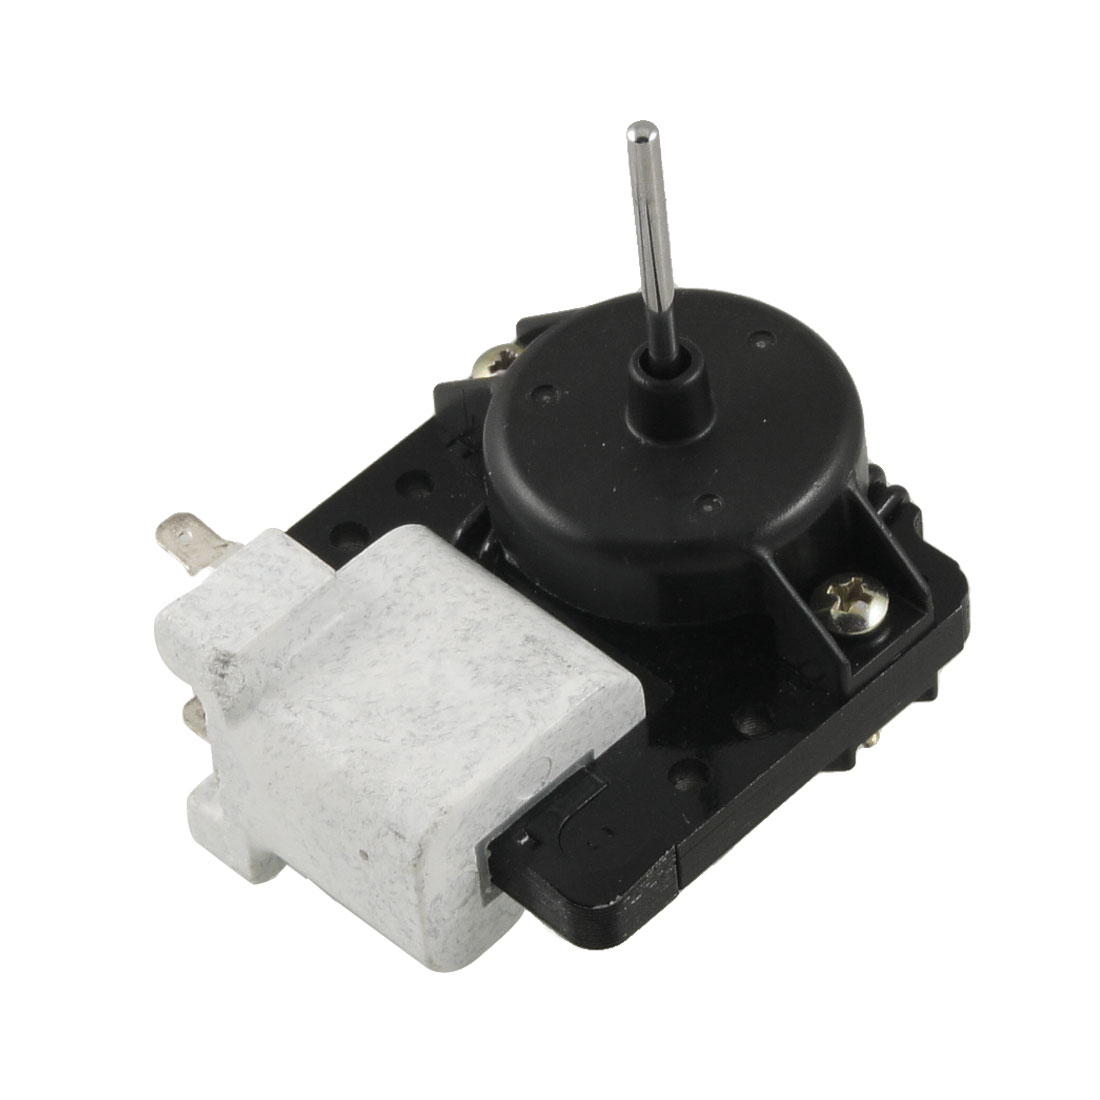 220-240V 50/60Hz 3.2mm Shaft Freezer Refrigerator Fan Motor